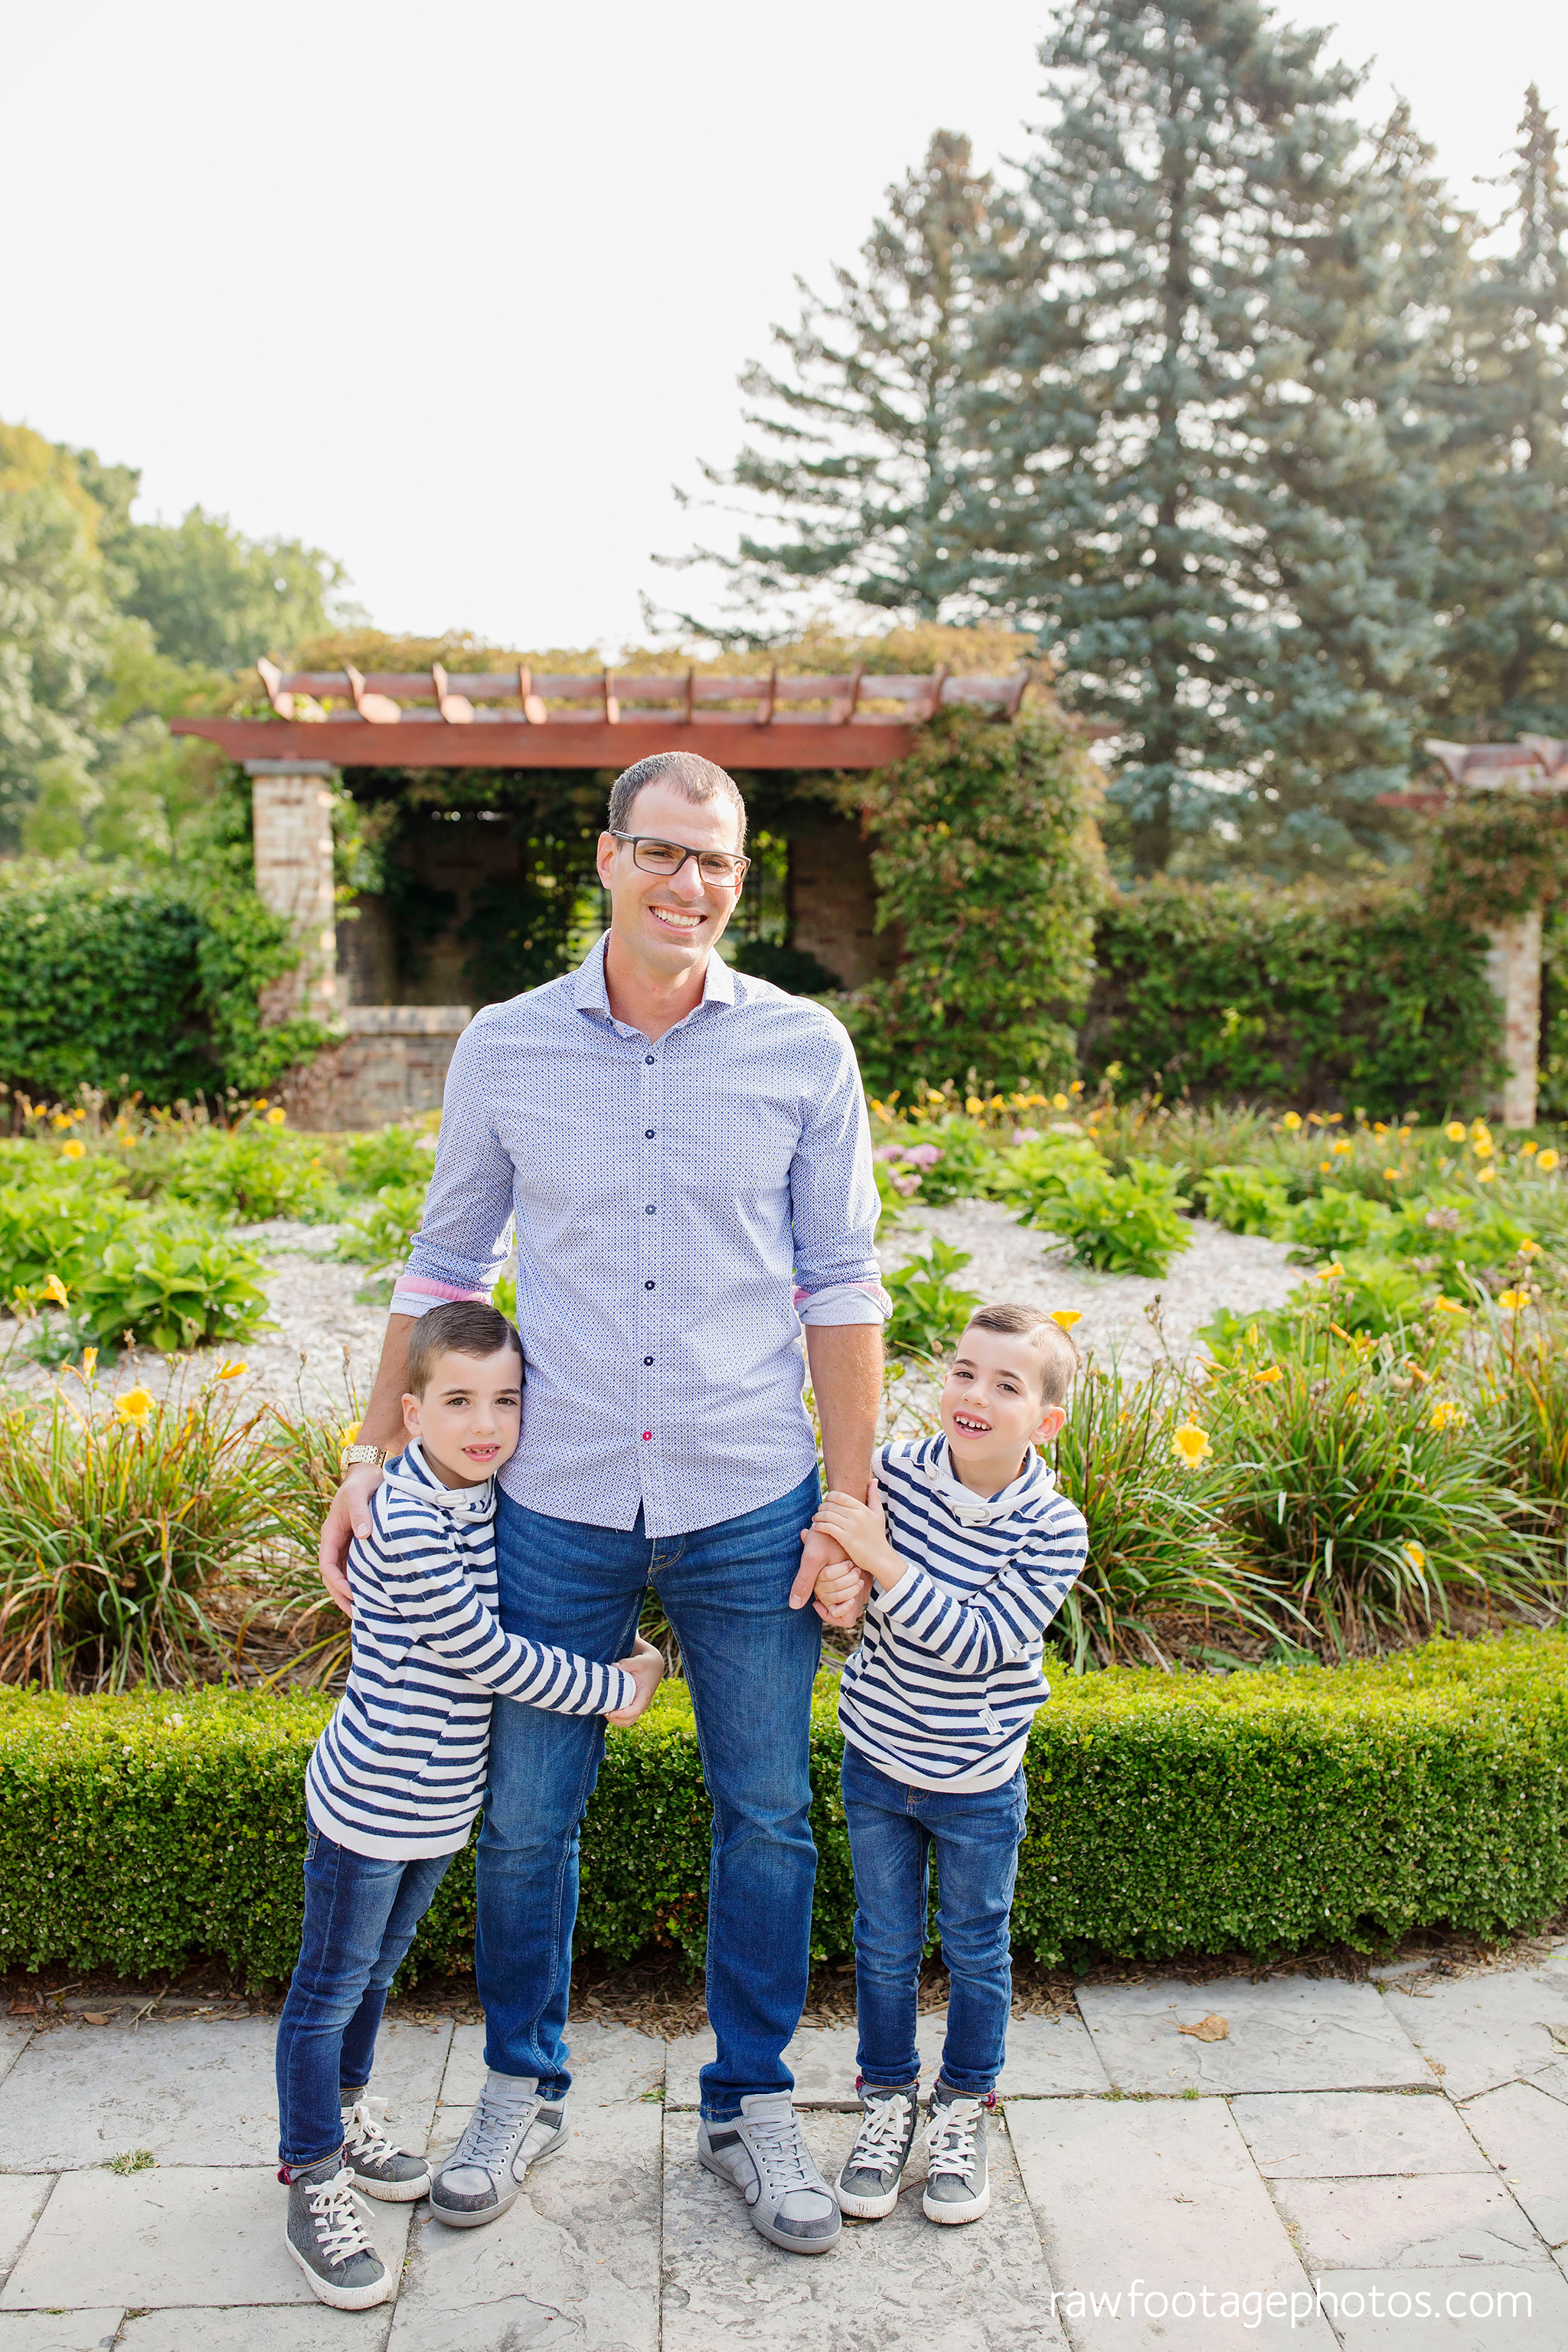 london_ontario_family_photographer-civic_gardens_extended_family_session-raw_footage_photography014.jpg